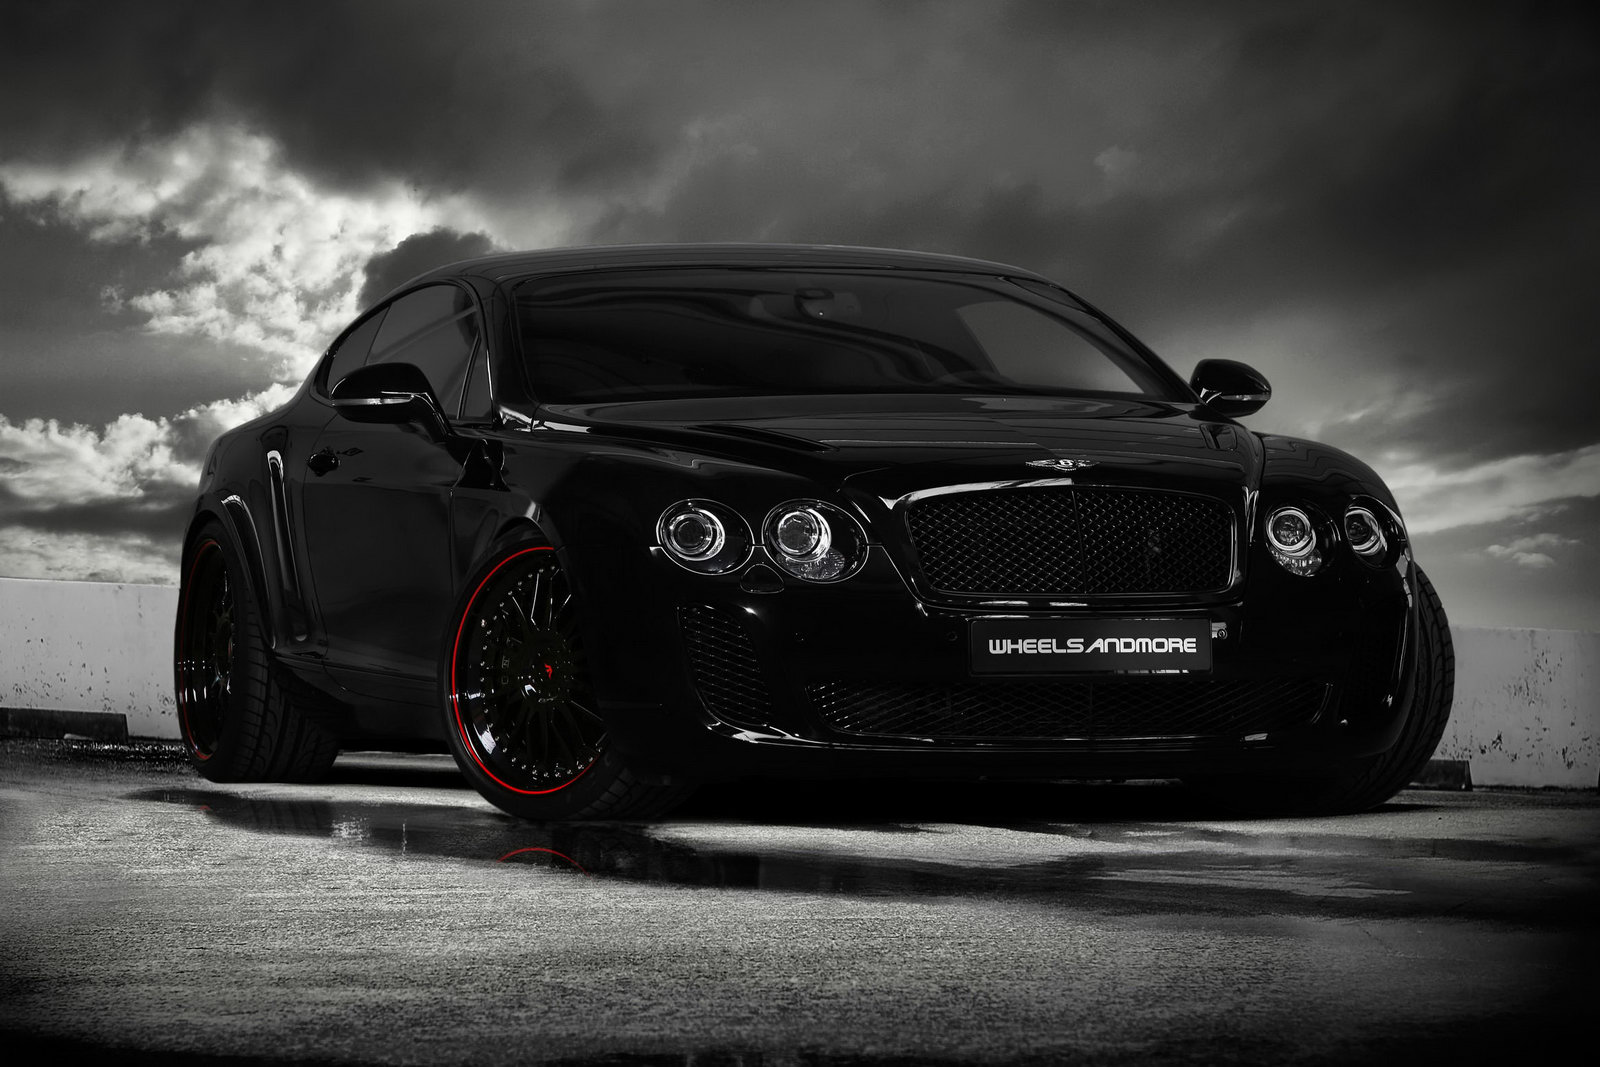 The car badass bentley continental gt ultrasports 702 by for The bentley